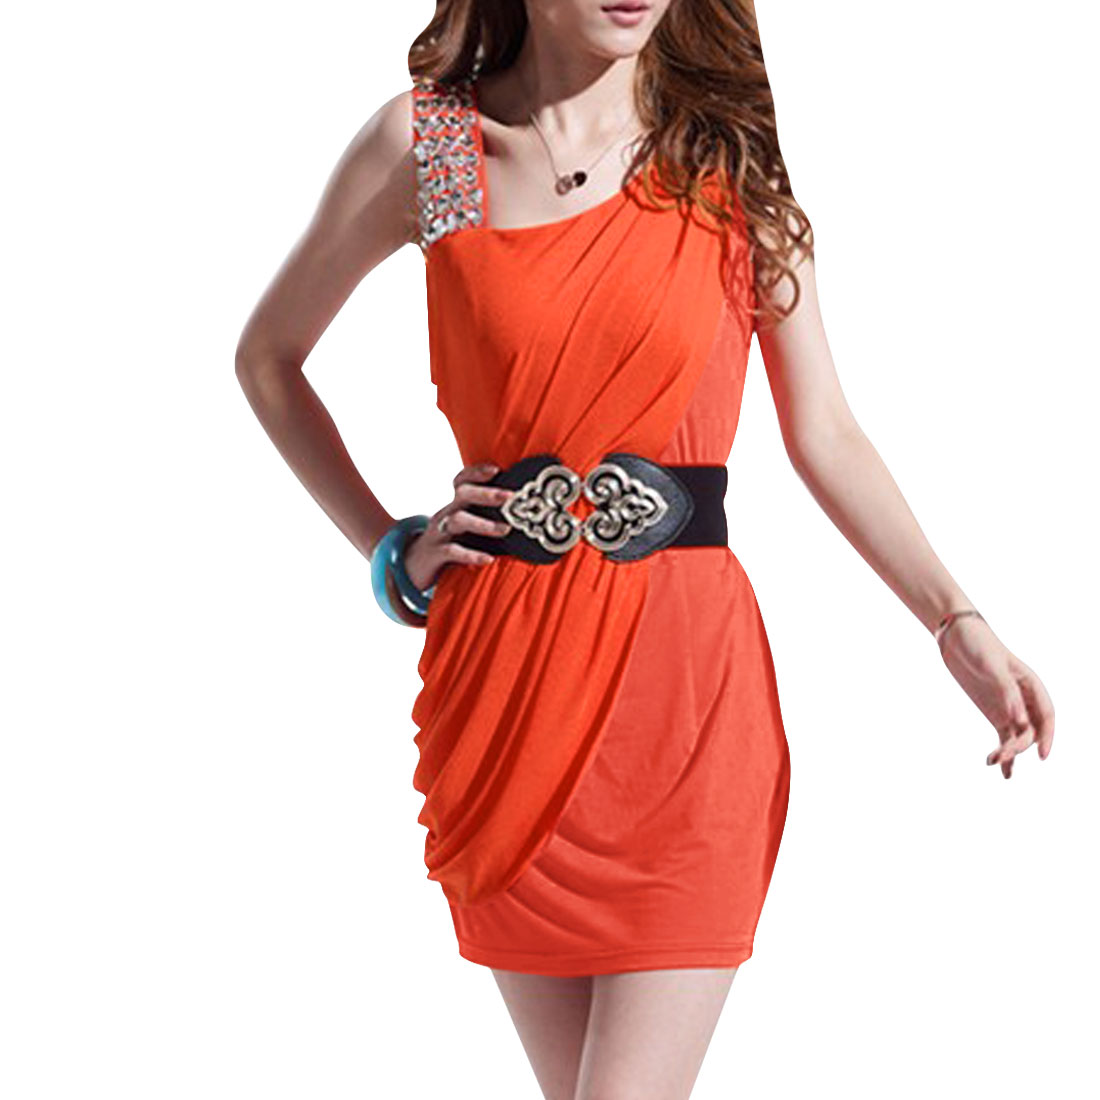 Women One Shoulder Sleeveless Mini Dress Orange XS